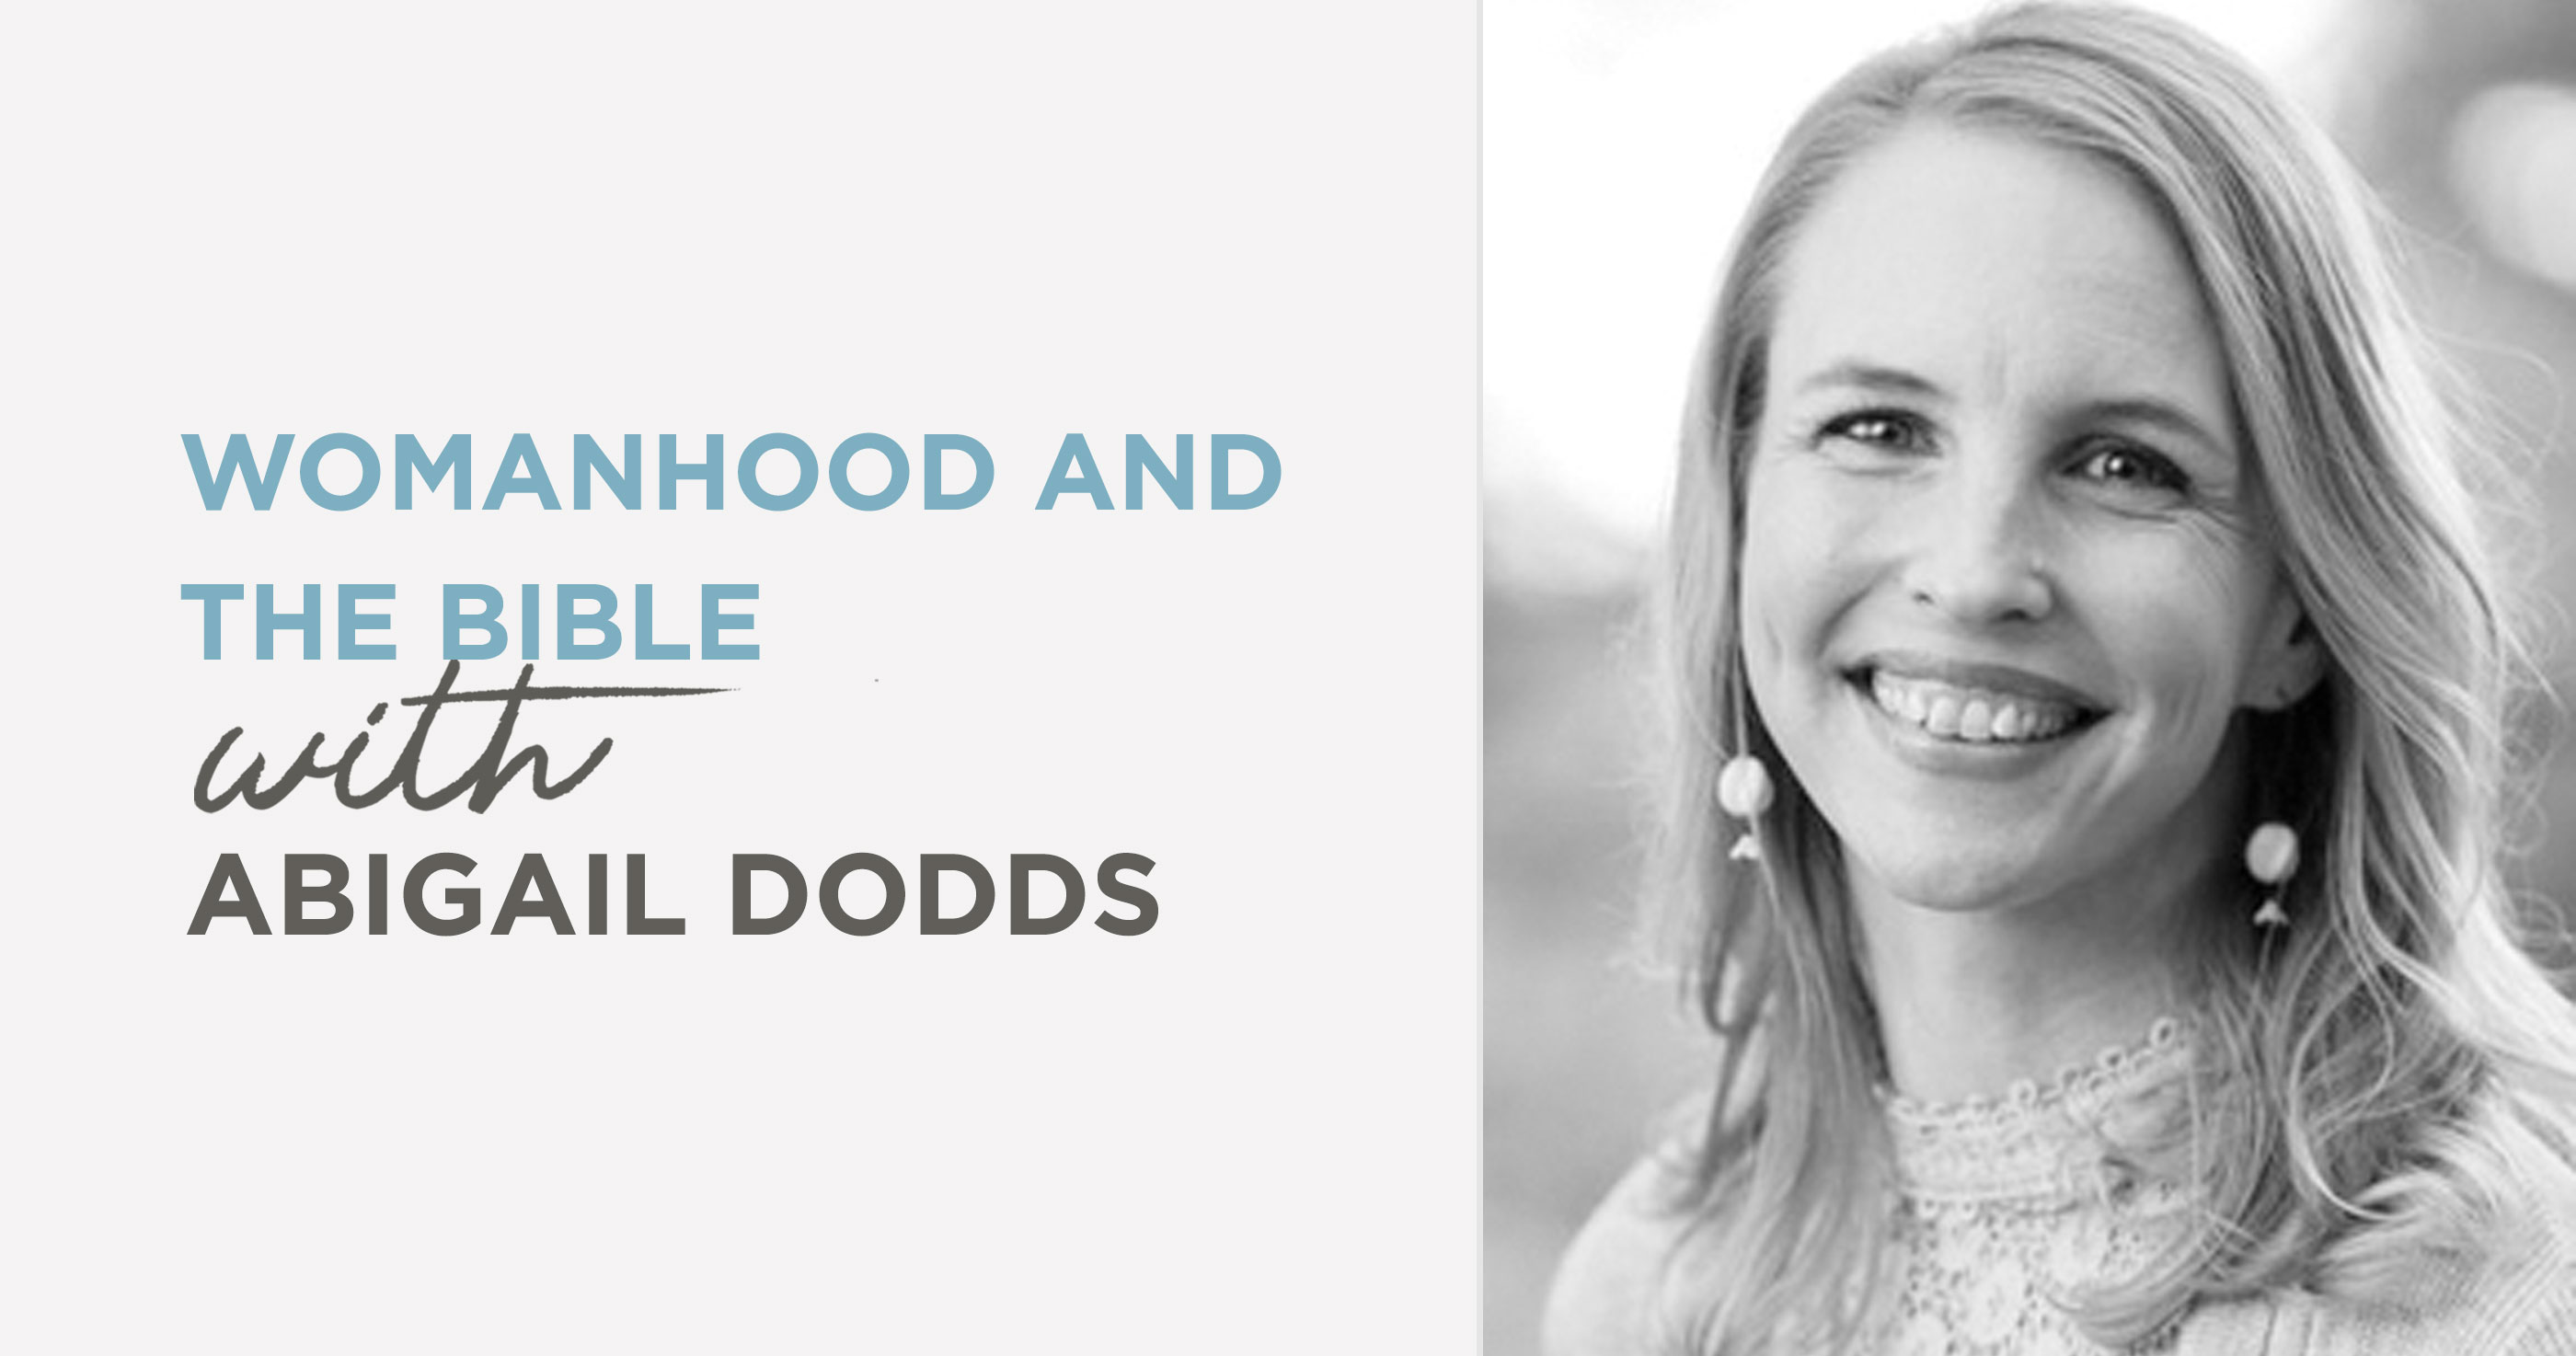 Podcast: Womanhood and the Bible (Abigail Dodds)